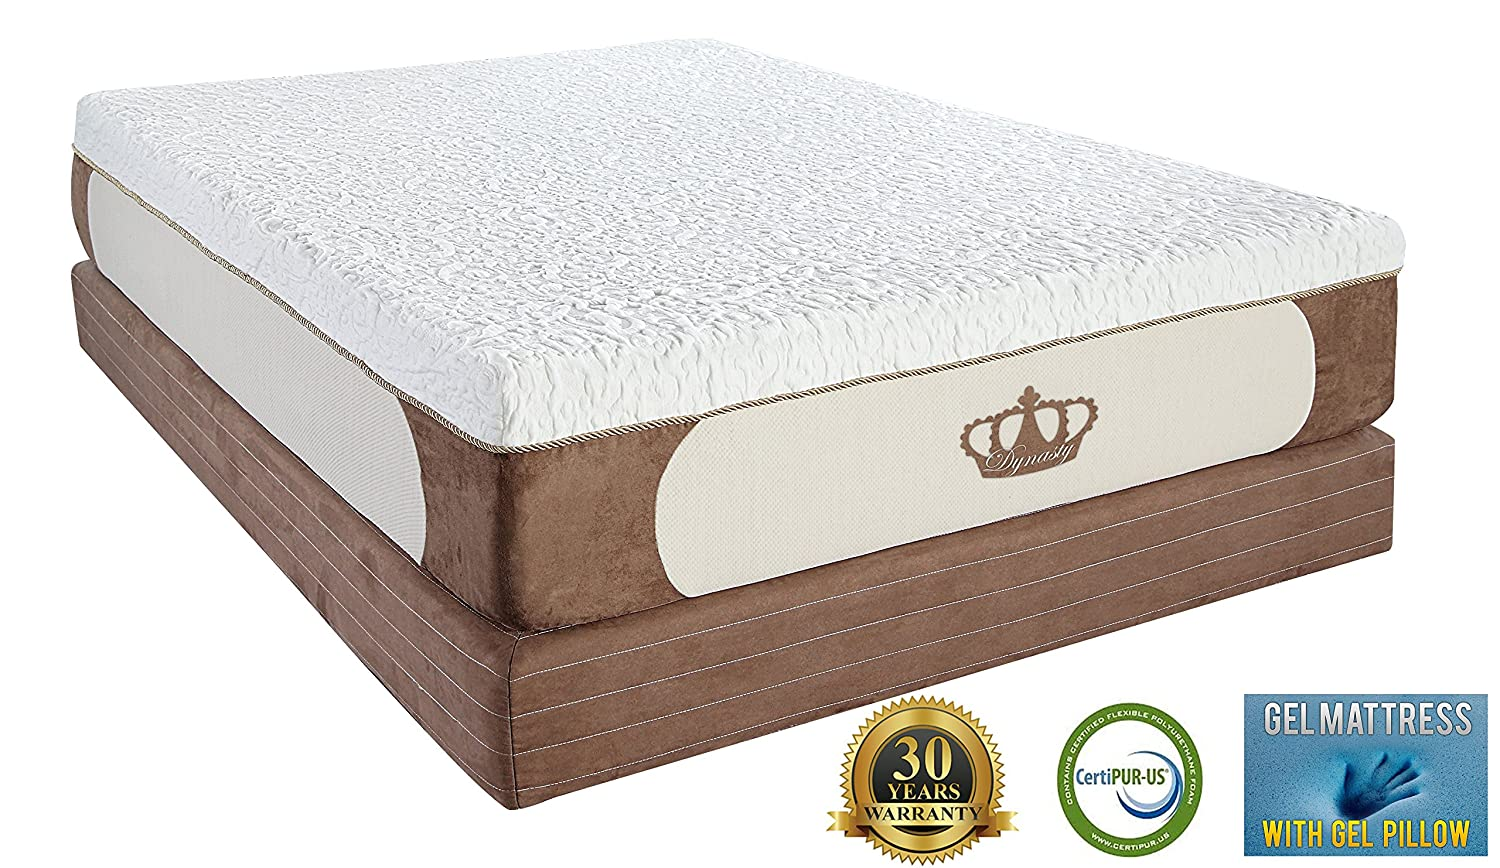 to people pioneers mattress and top gel zinus product side certified certipur presents guide in choices your this big reviews king infused turns guys for hybrid inch best heavy that another is amazing conform memory foam uses us